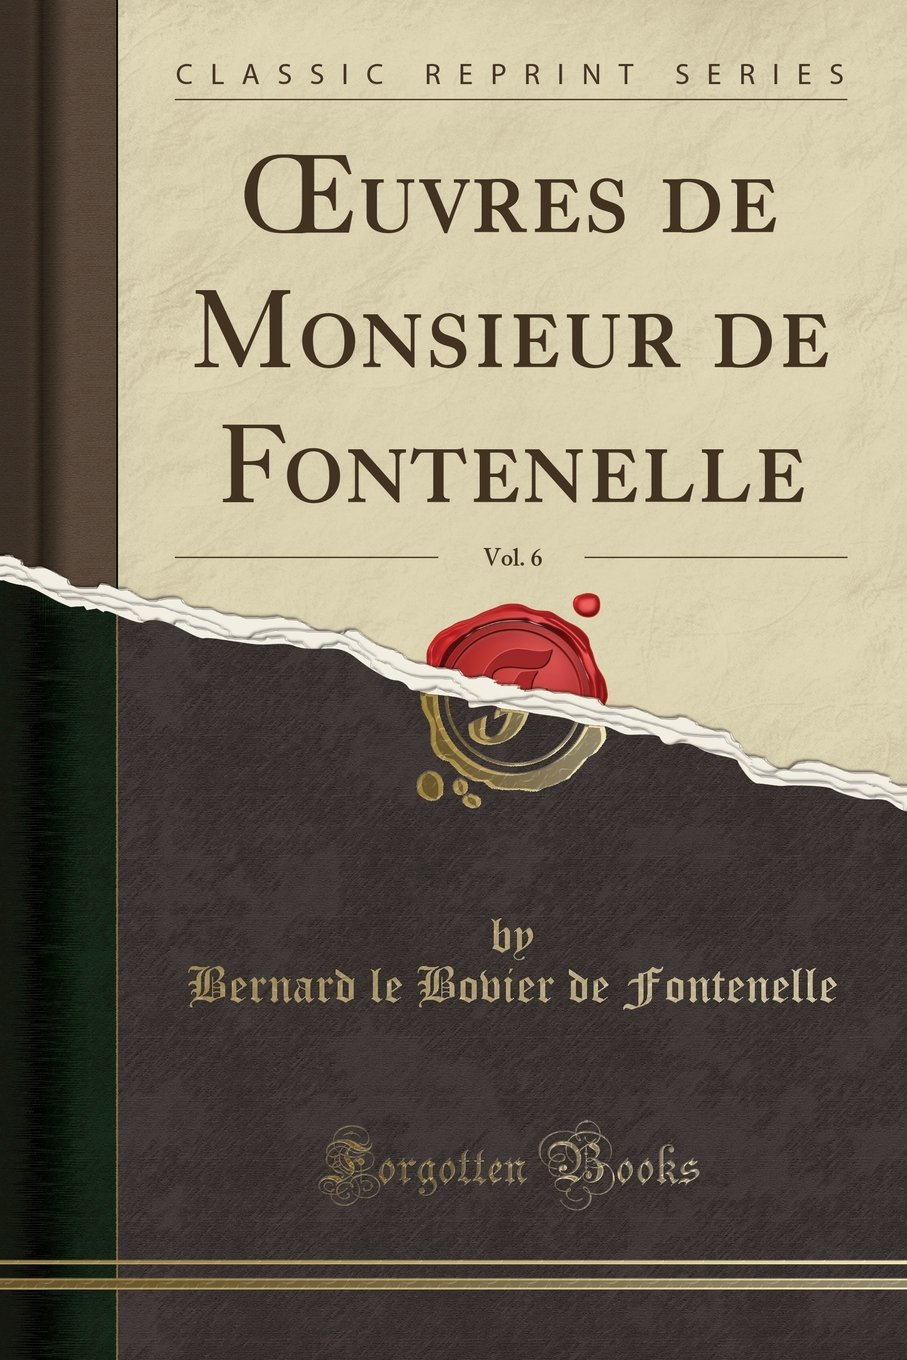 Œuvres de Monsieur de Fontenelle, Vol. 6 (Classic Reprint) (French Edition) pdf epub